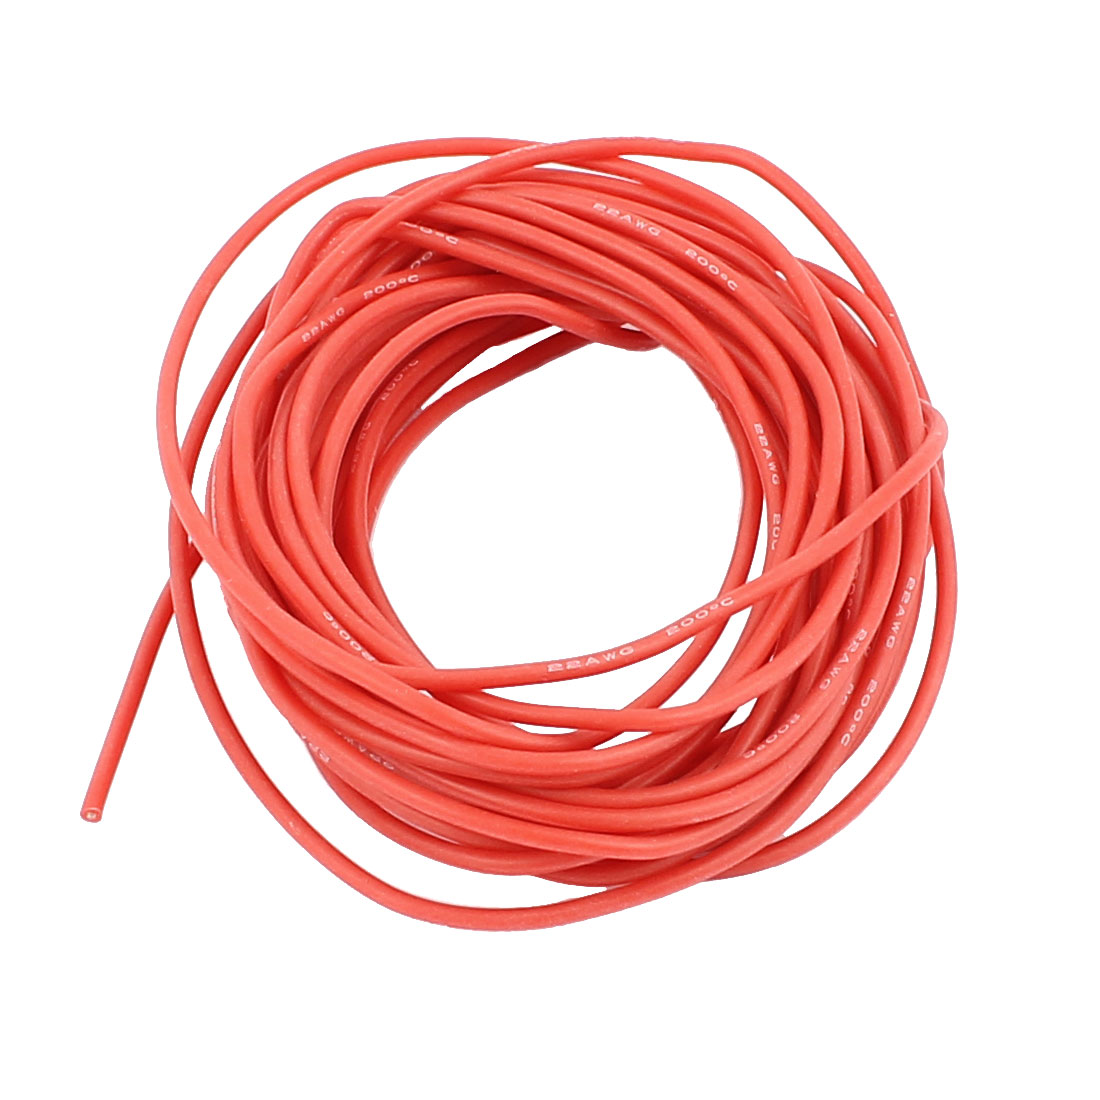 5M 22AWG Electric Copper Core Flexible Silicone Wire Cable Red